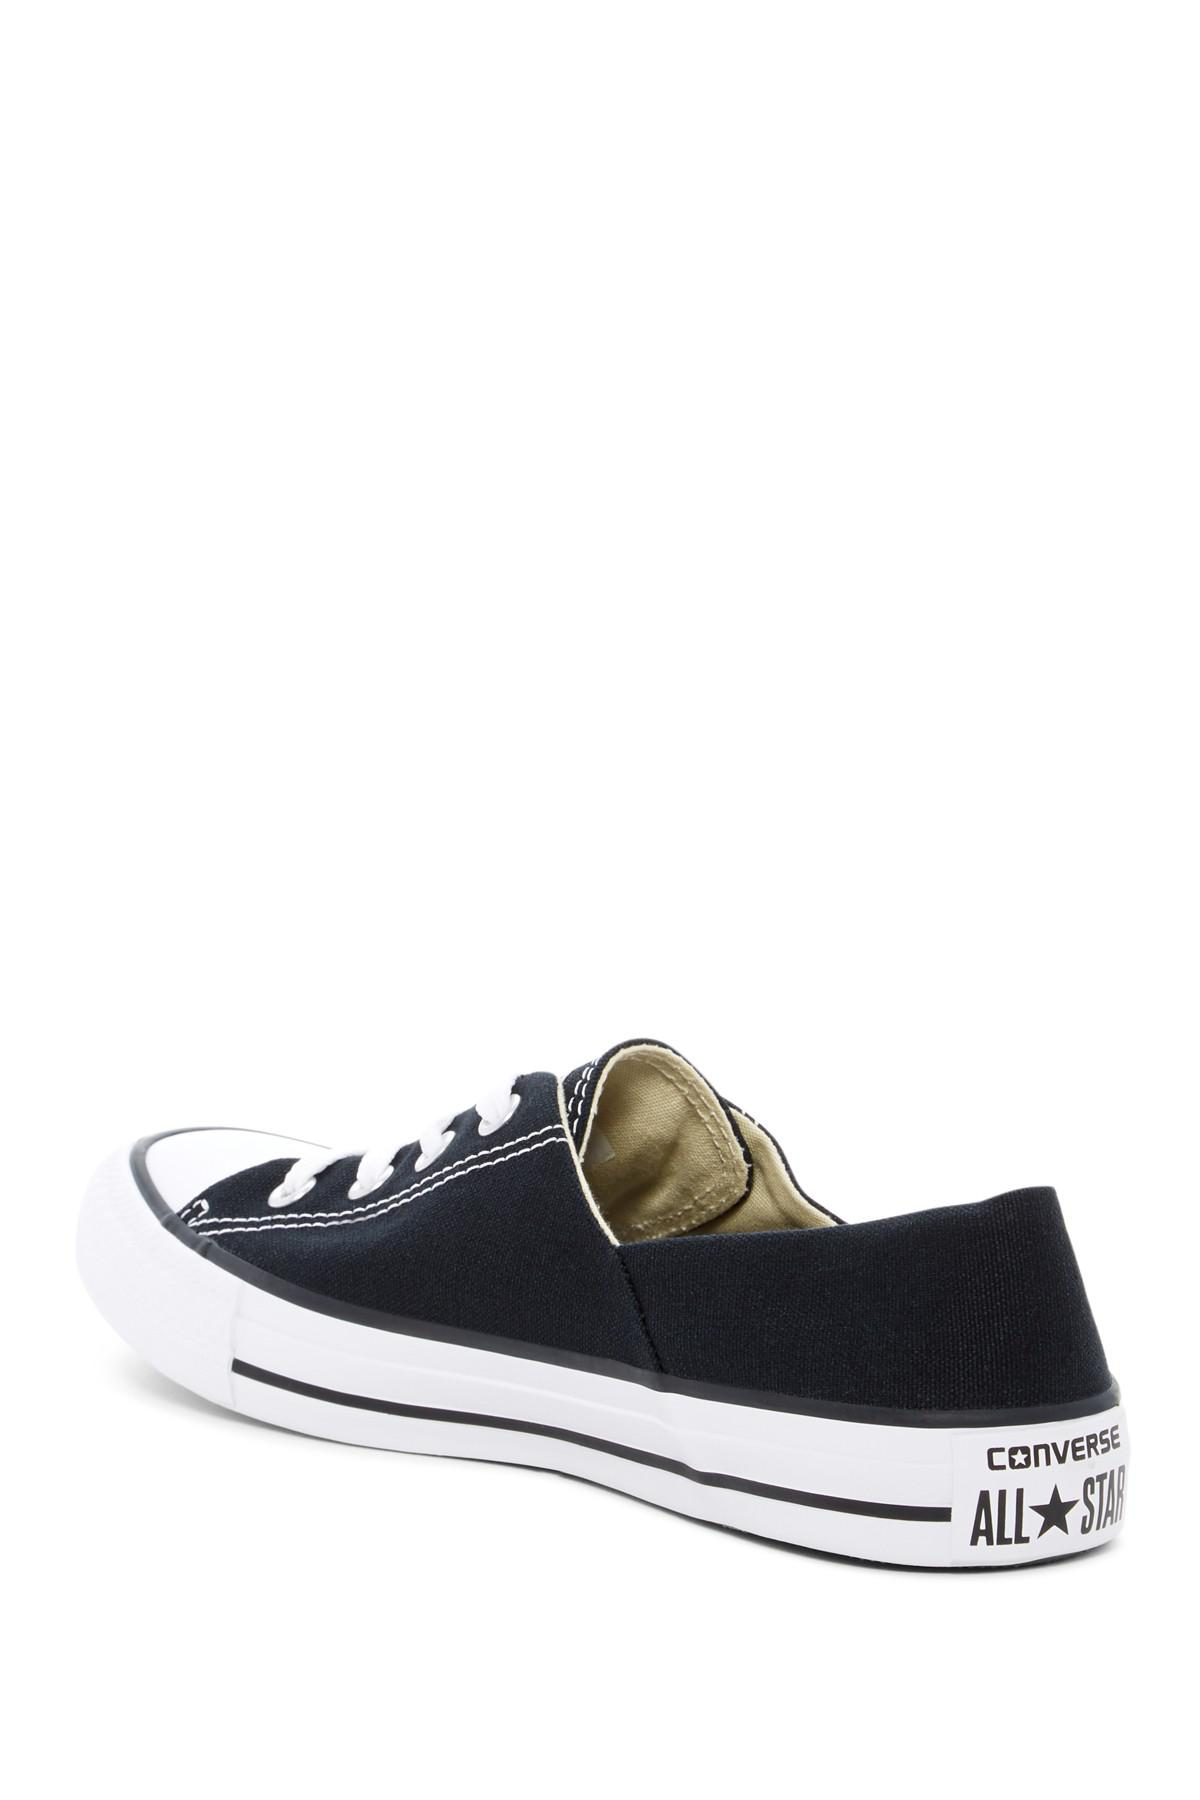 afe405eb1e1 Converse - Black Chuck Taylor All Star Coral Oxford Sneakers (women) -  Lyst. View fullscreen